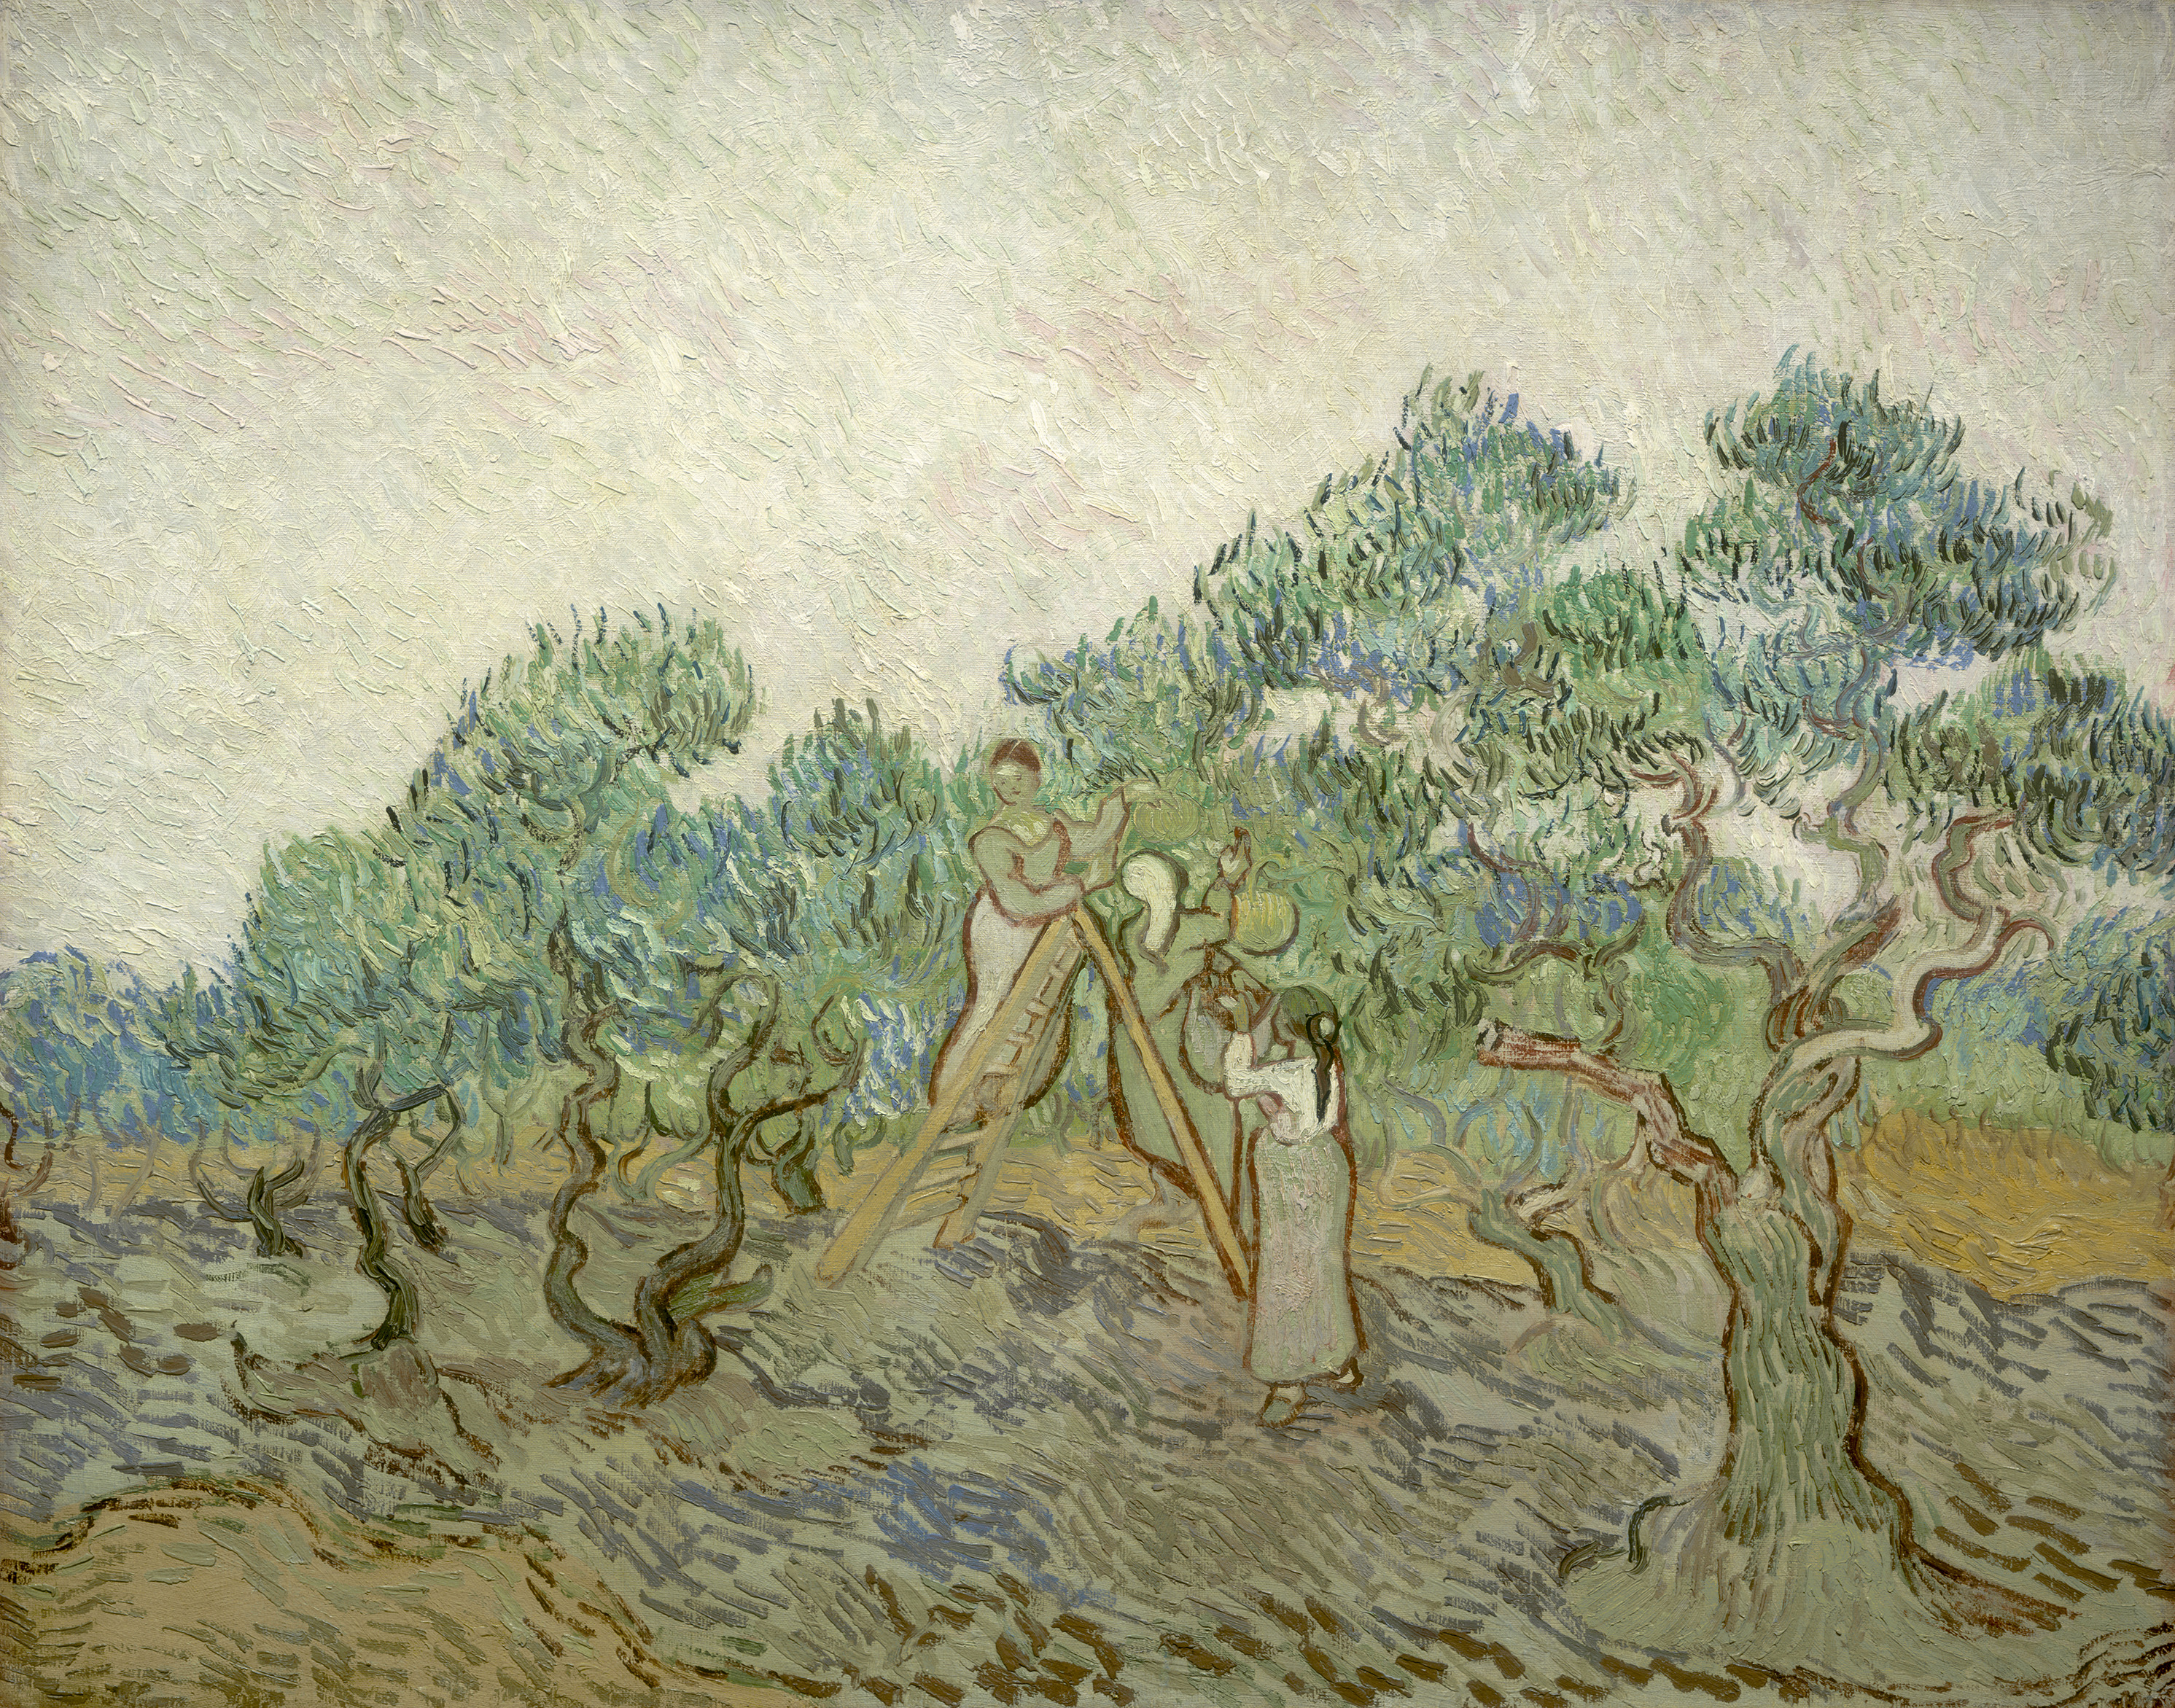 Vincent van Gogh - The Olive Orchard 1889